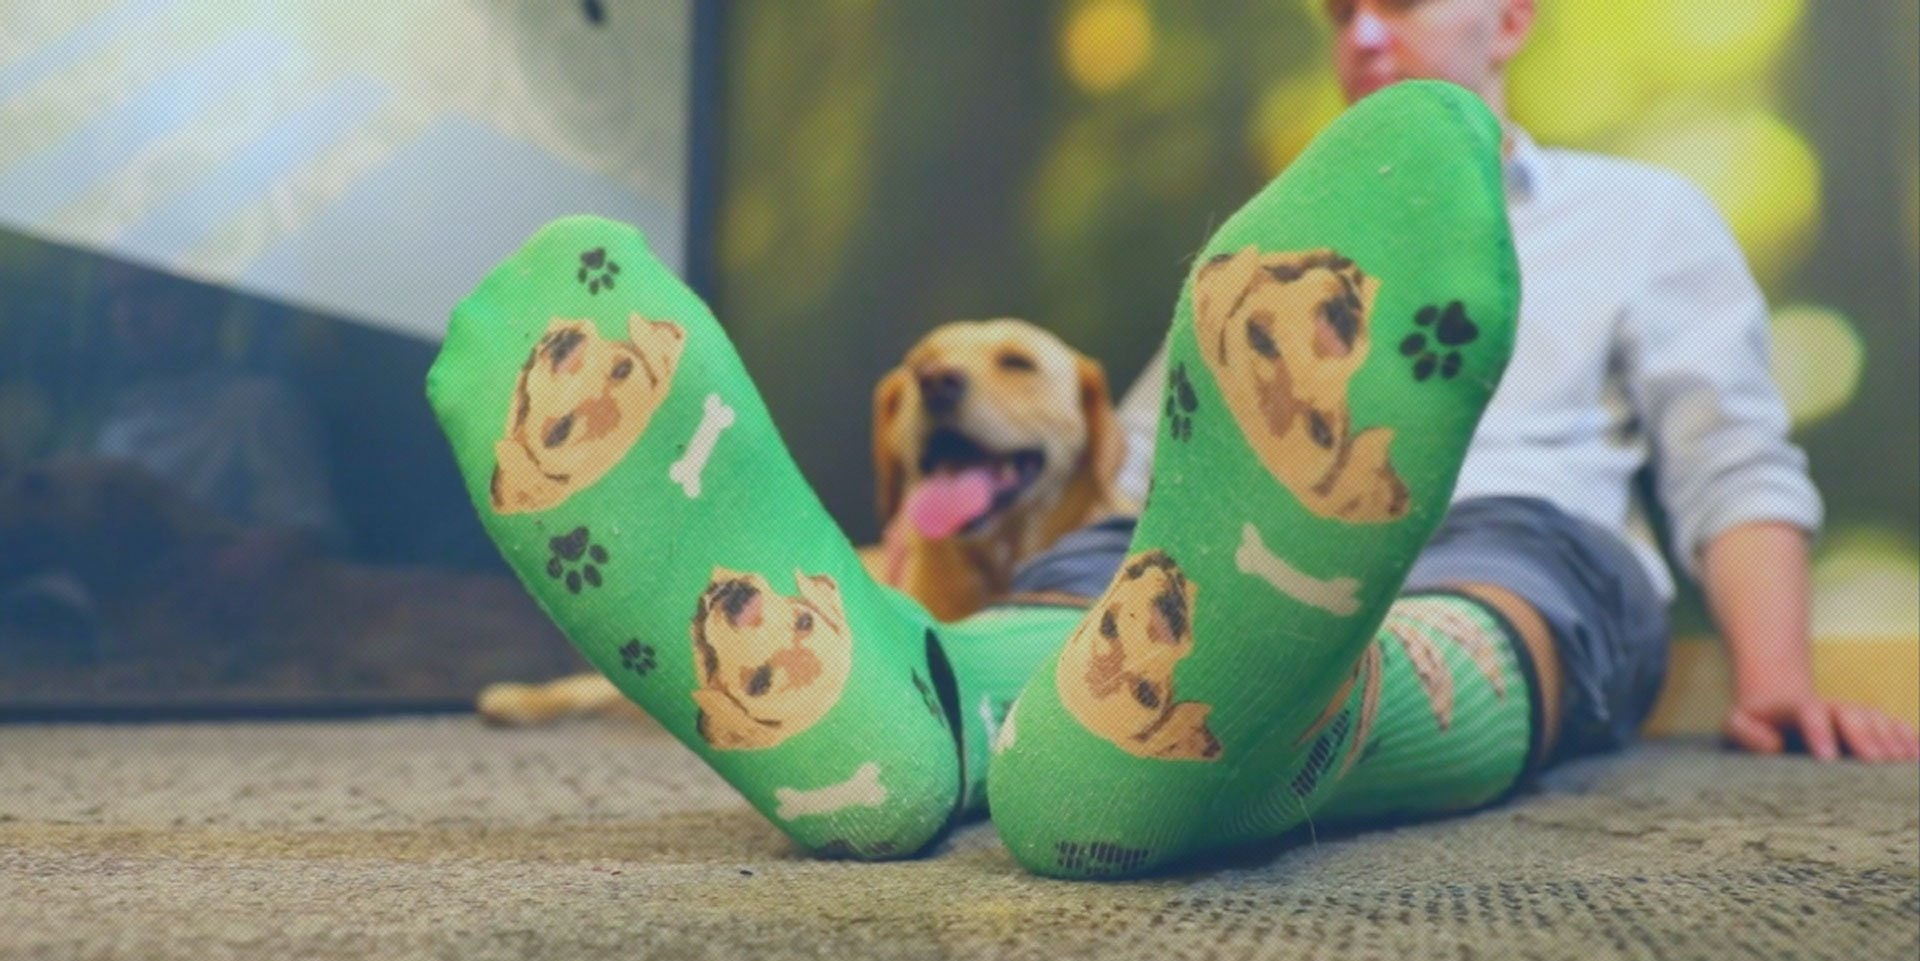 Finally, There's a Company That Will Print Your Pet's Face on a Pair of Socks